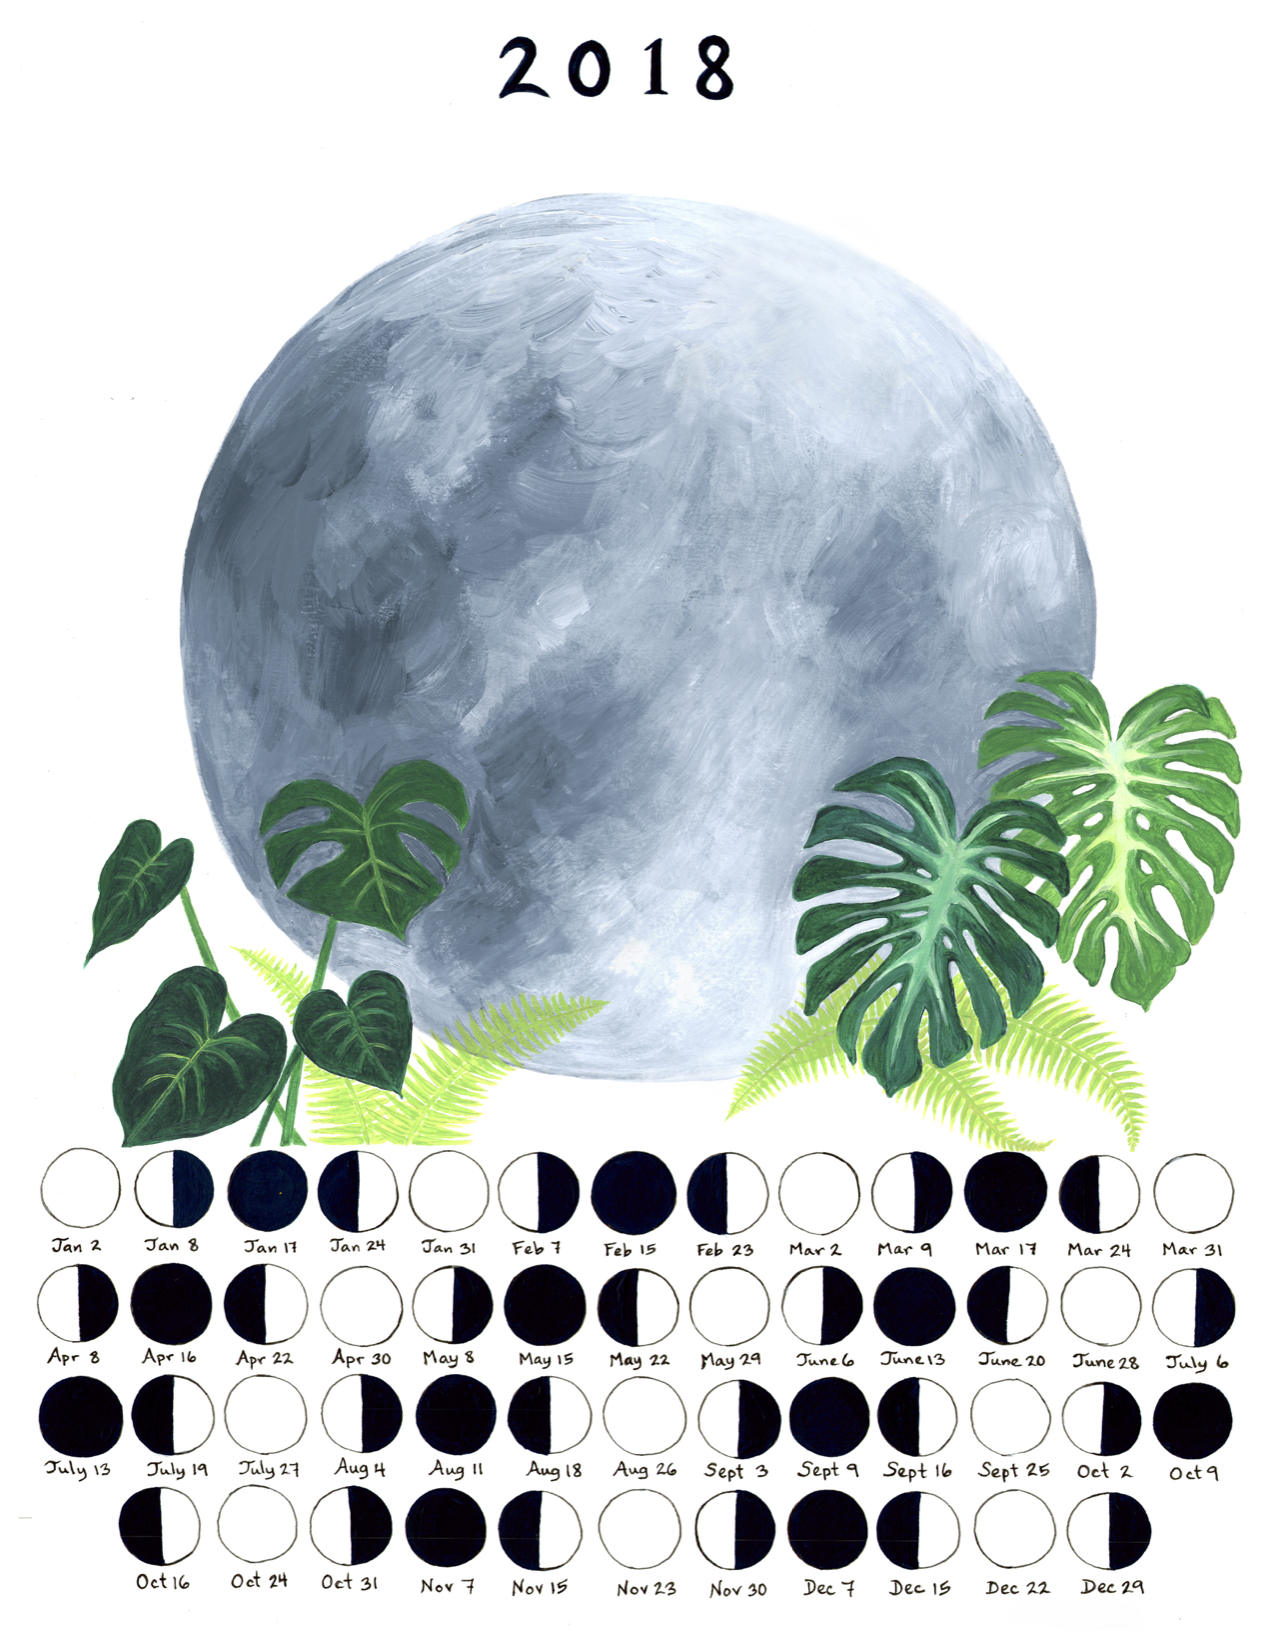 May Moon Phase 2018 Calendar Lunar Template